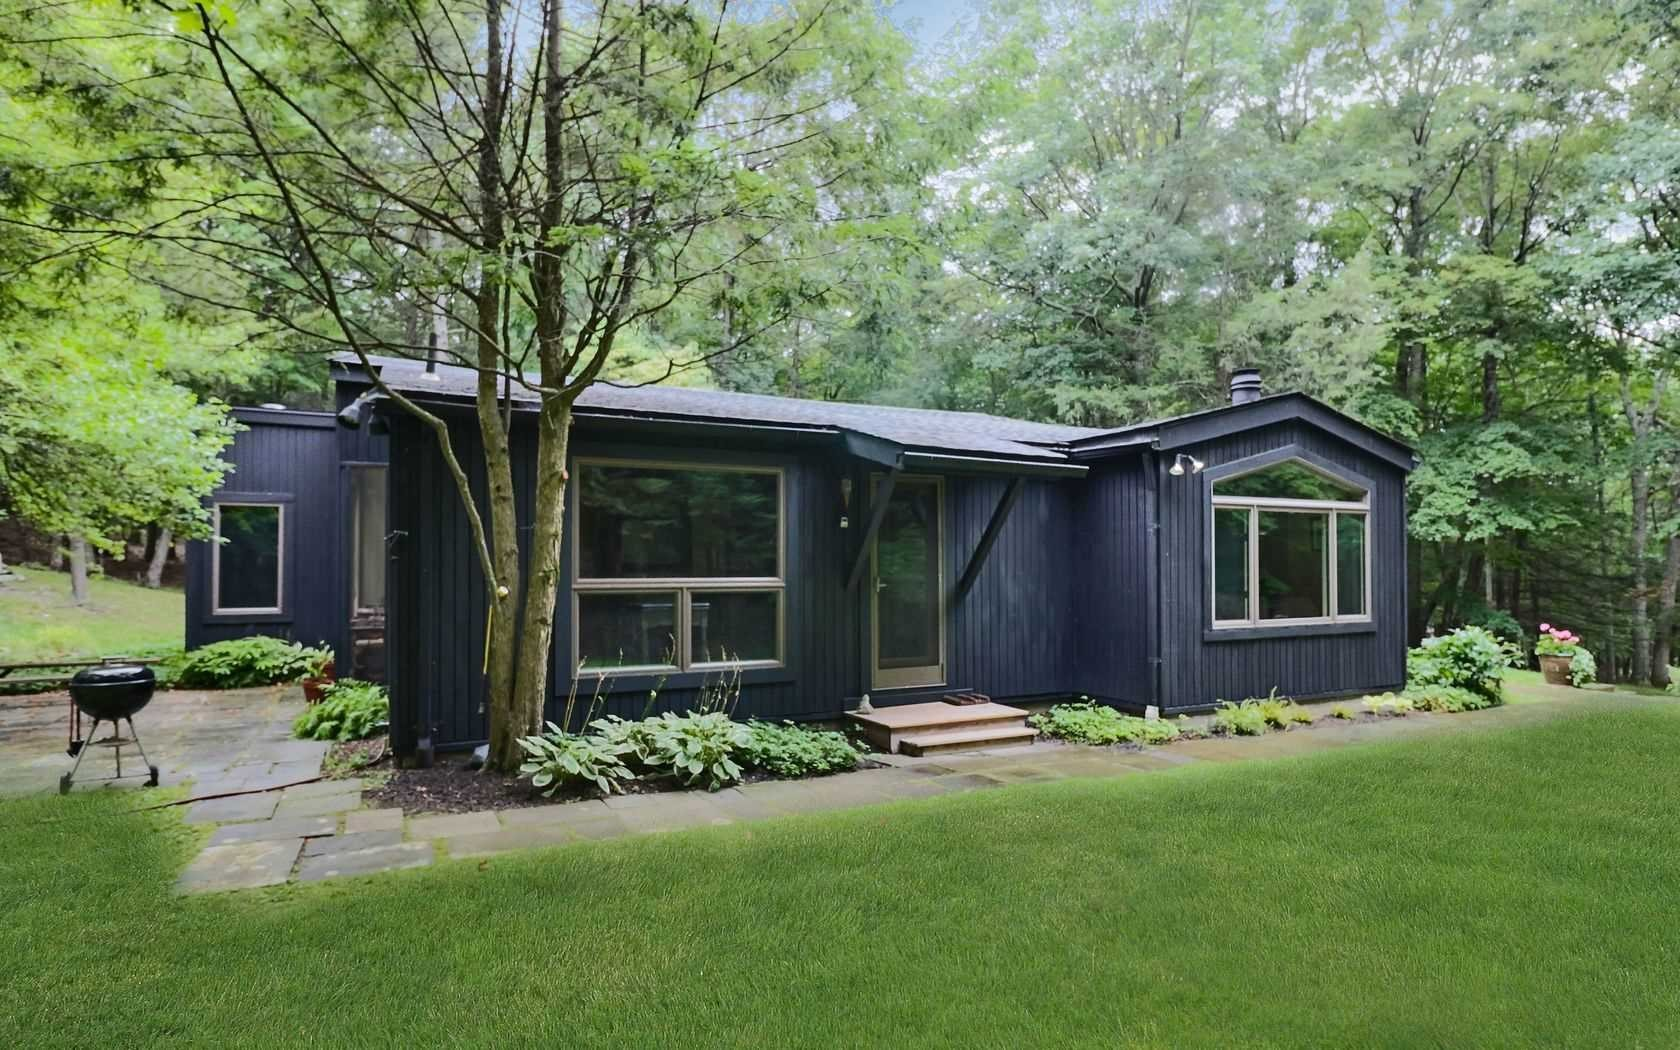 Additional photo for property listing at 199 CREAMERY Road 199 CREAMERY Road Stanfordville, New York 12581 United States